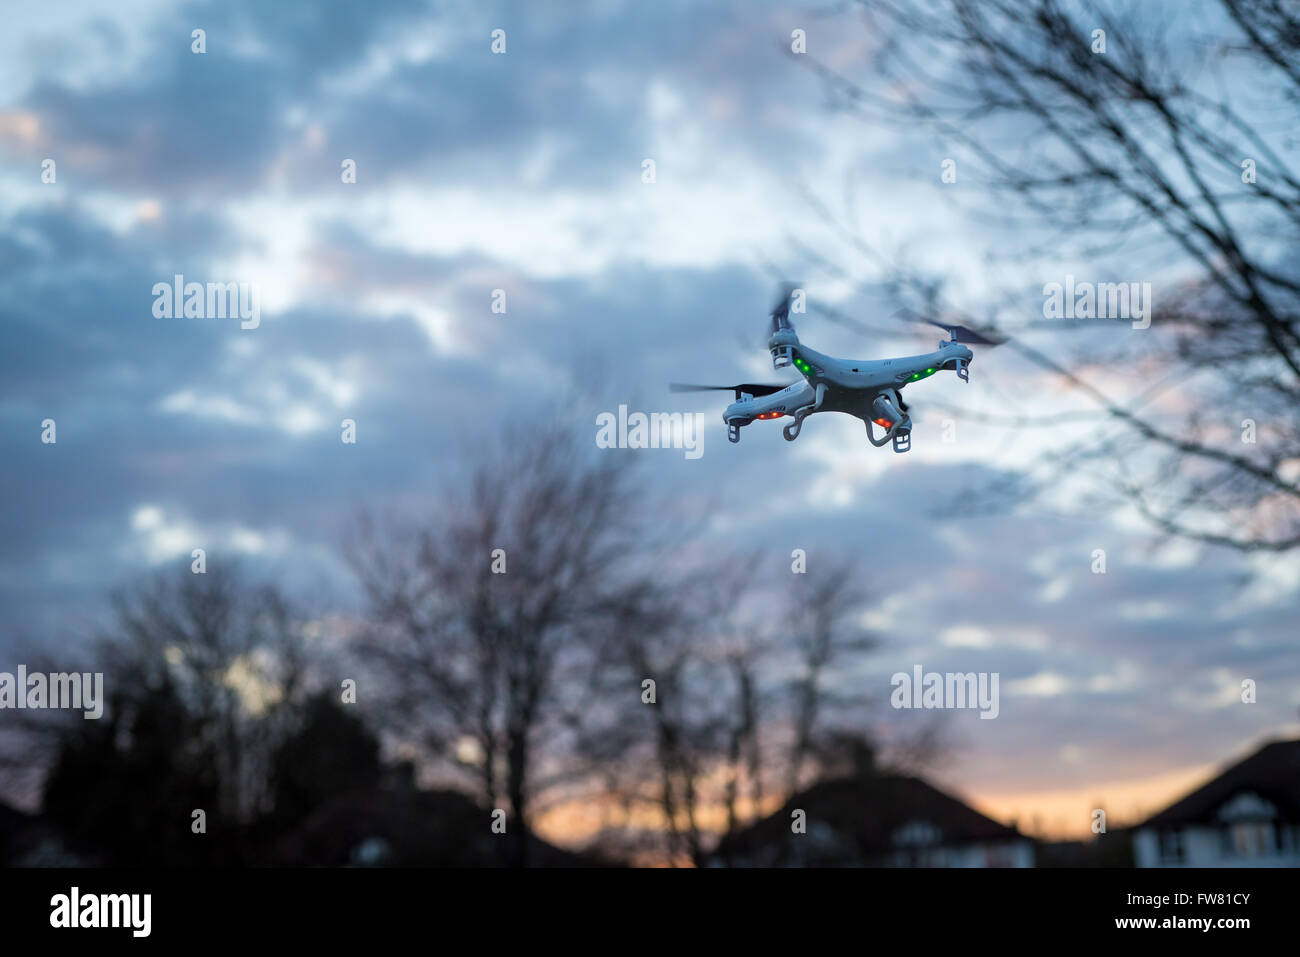 A man flies a quadcopter, or drone, in a park in Oxford, UK - Stock Image